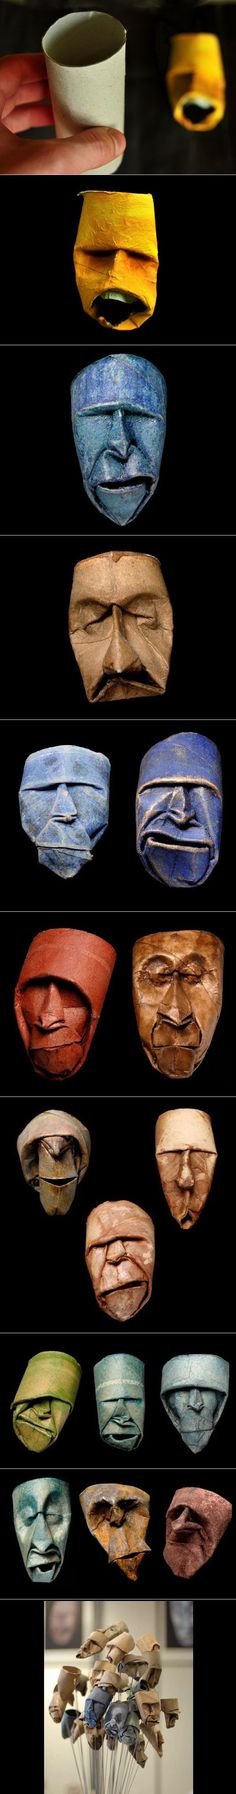 Brilliant masks out of toilet rolls